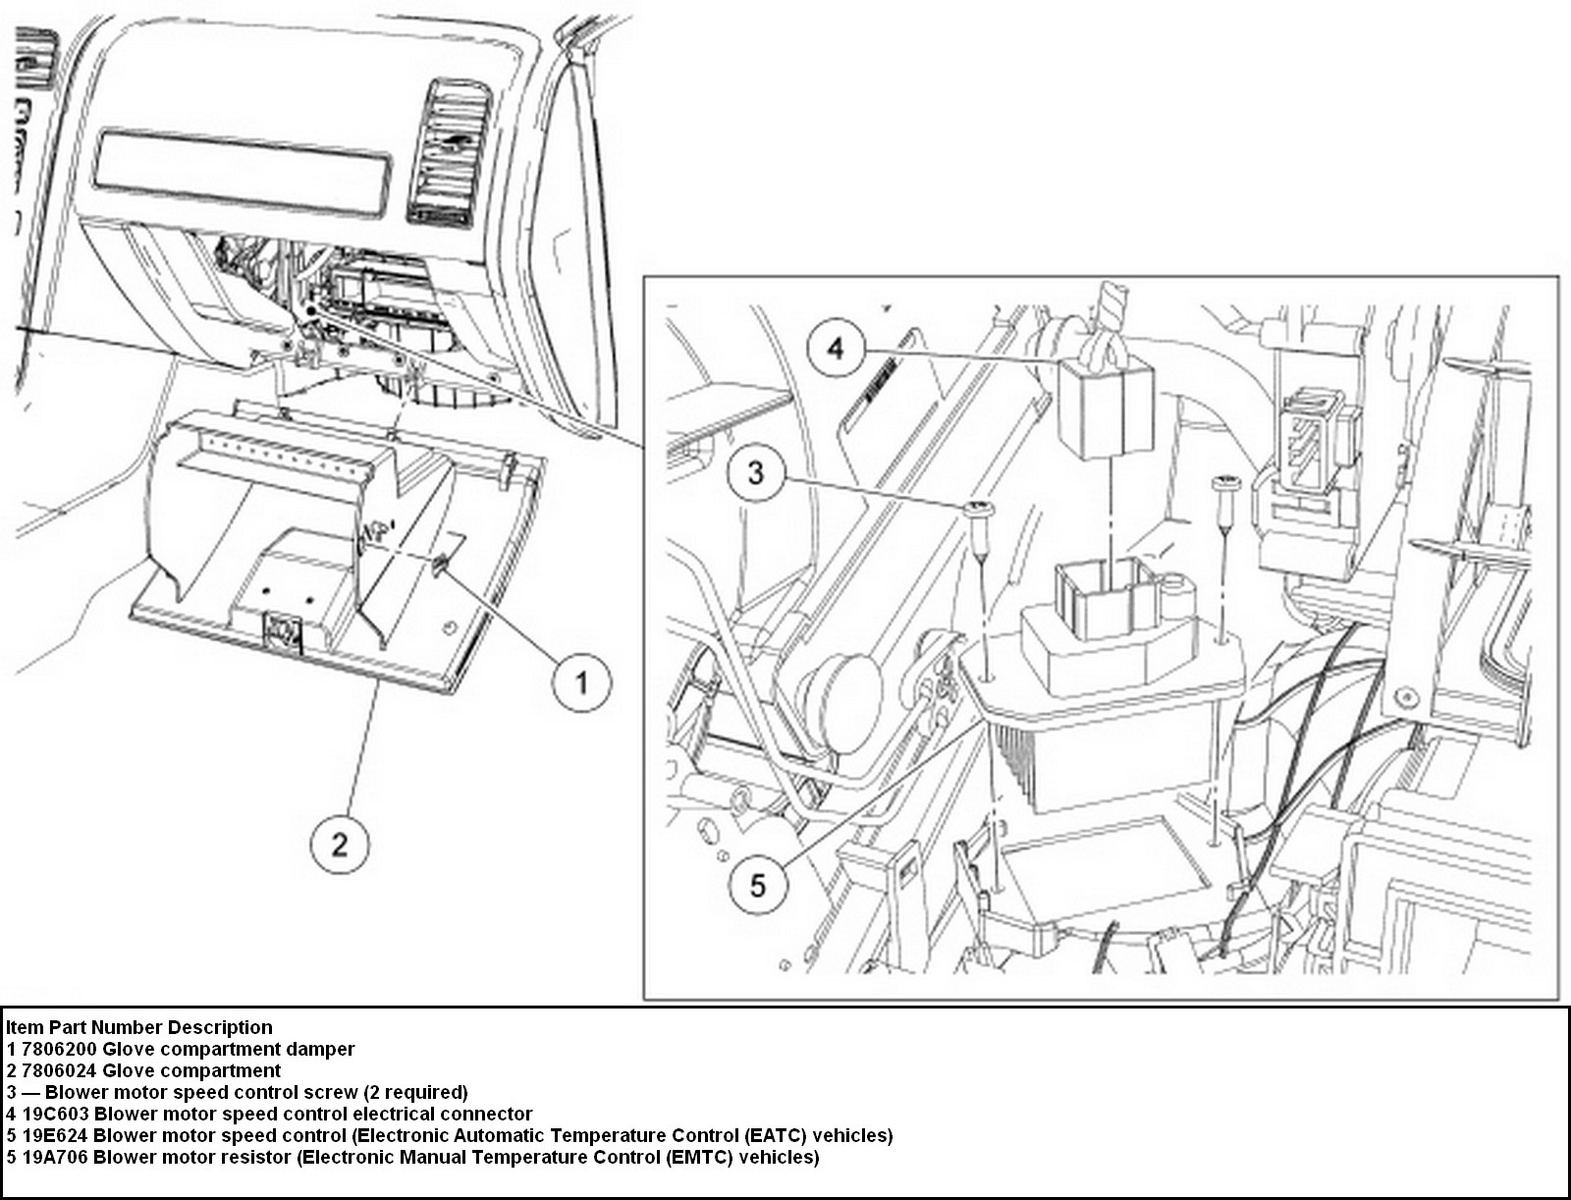 2011 Chevy Hhr Wiring Diagram Reveolution Of 2010 Radio Ford Edge Questions How Do You Remove And Replace Body Control Module 2004 Silverado